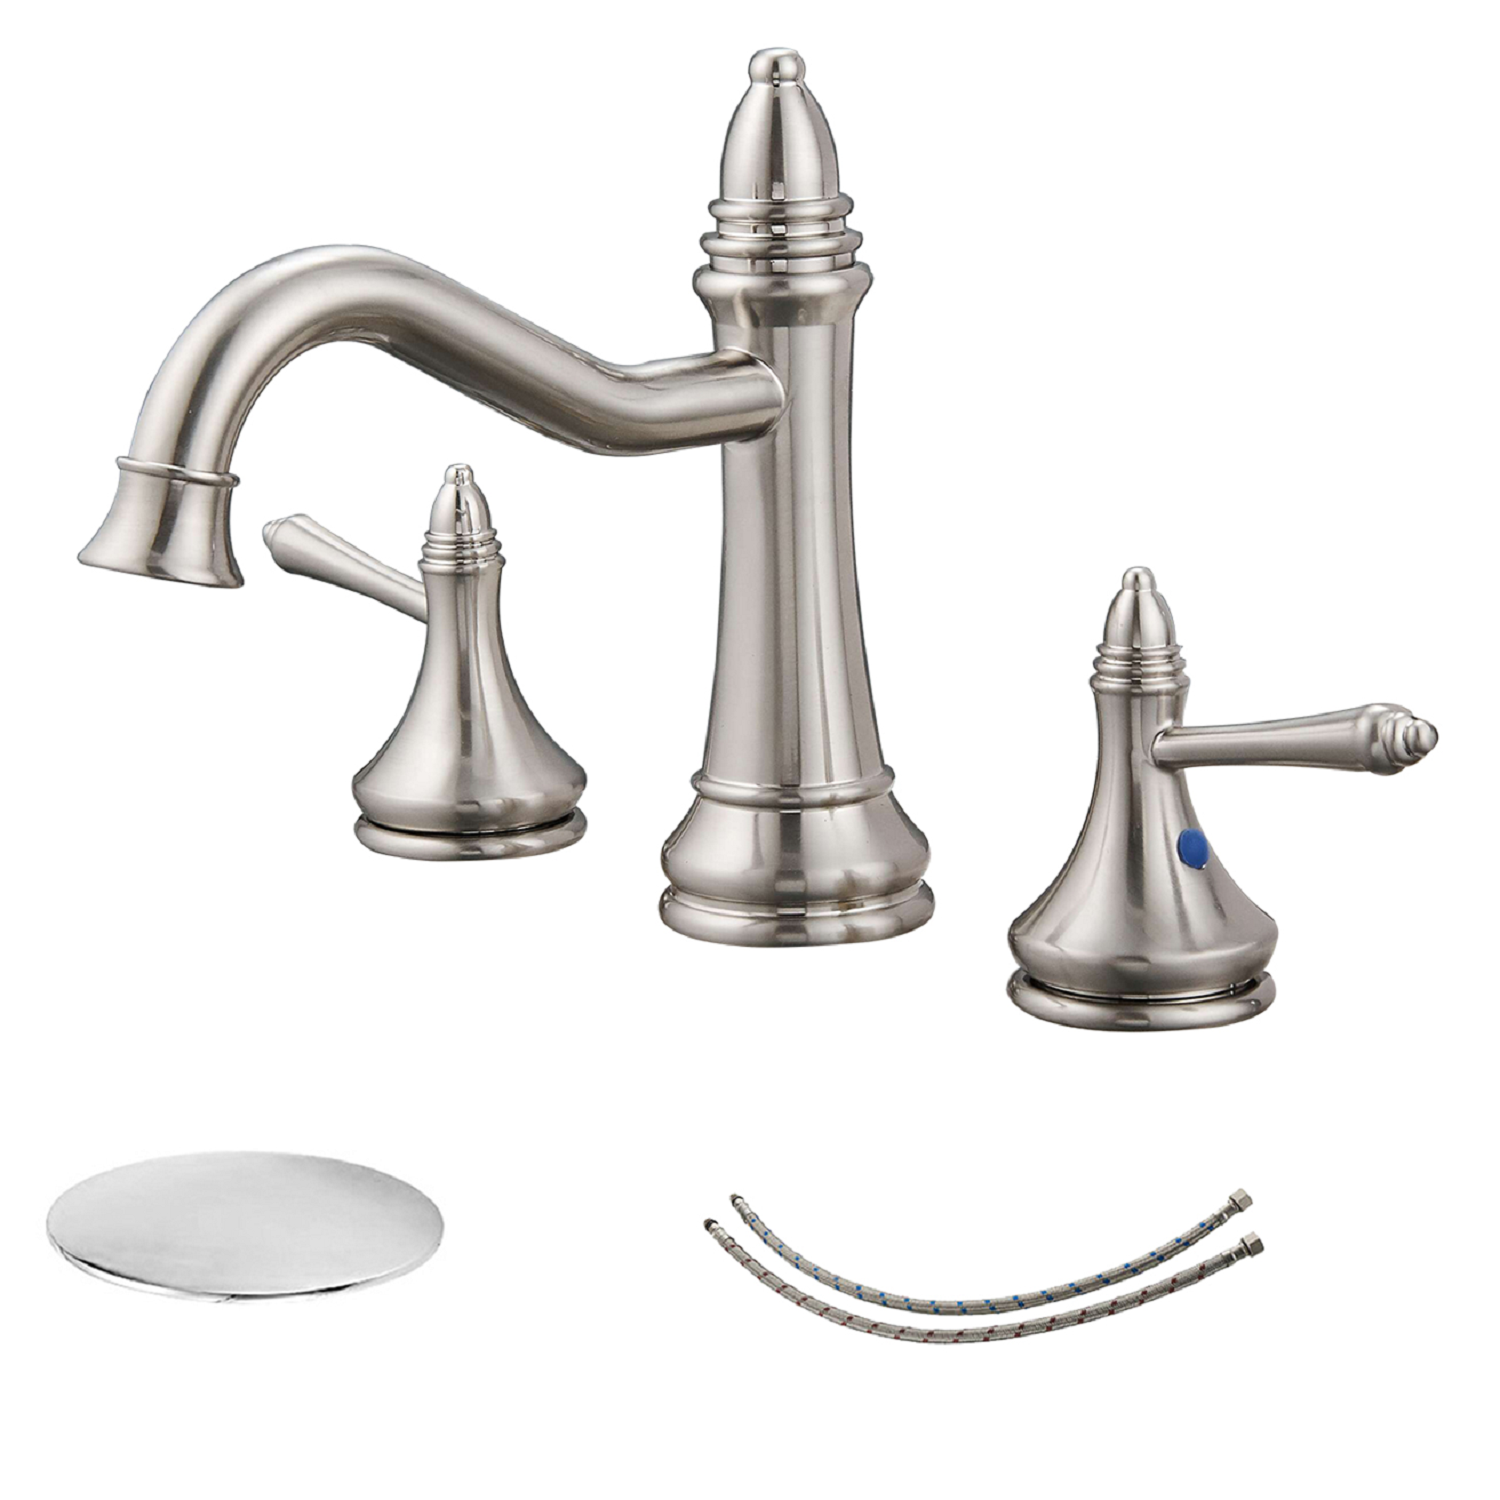 BWE A-916436 Dual Handle Bathroom Faucet (Full Kit)